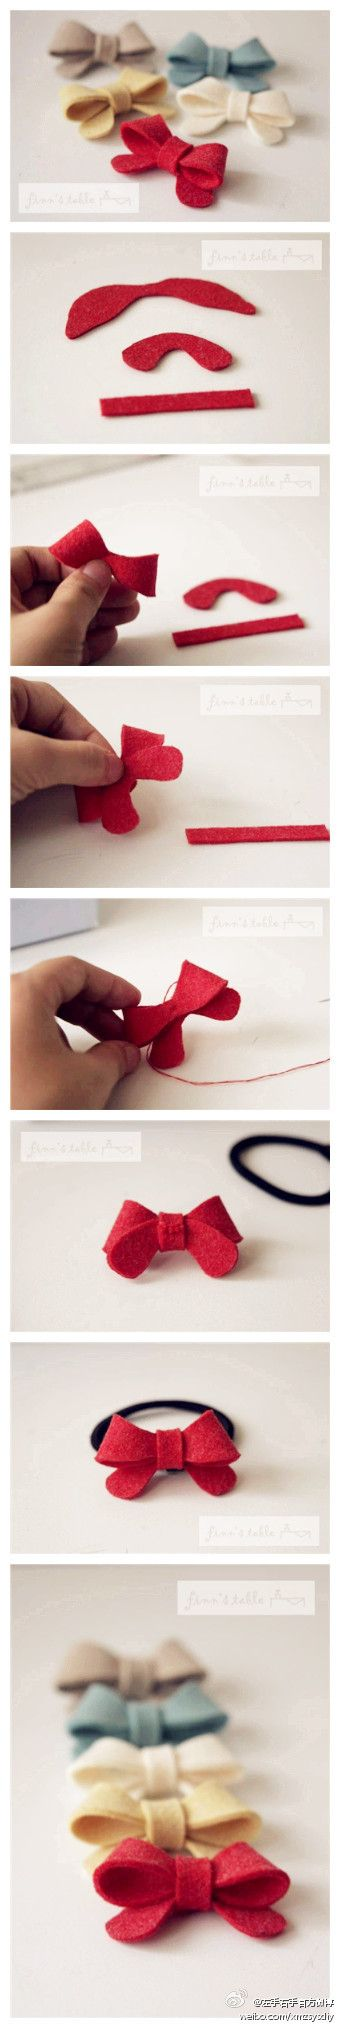 Popular Pix~hair bows